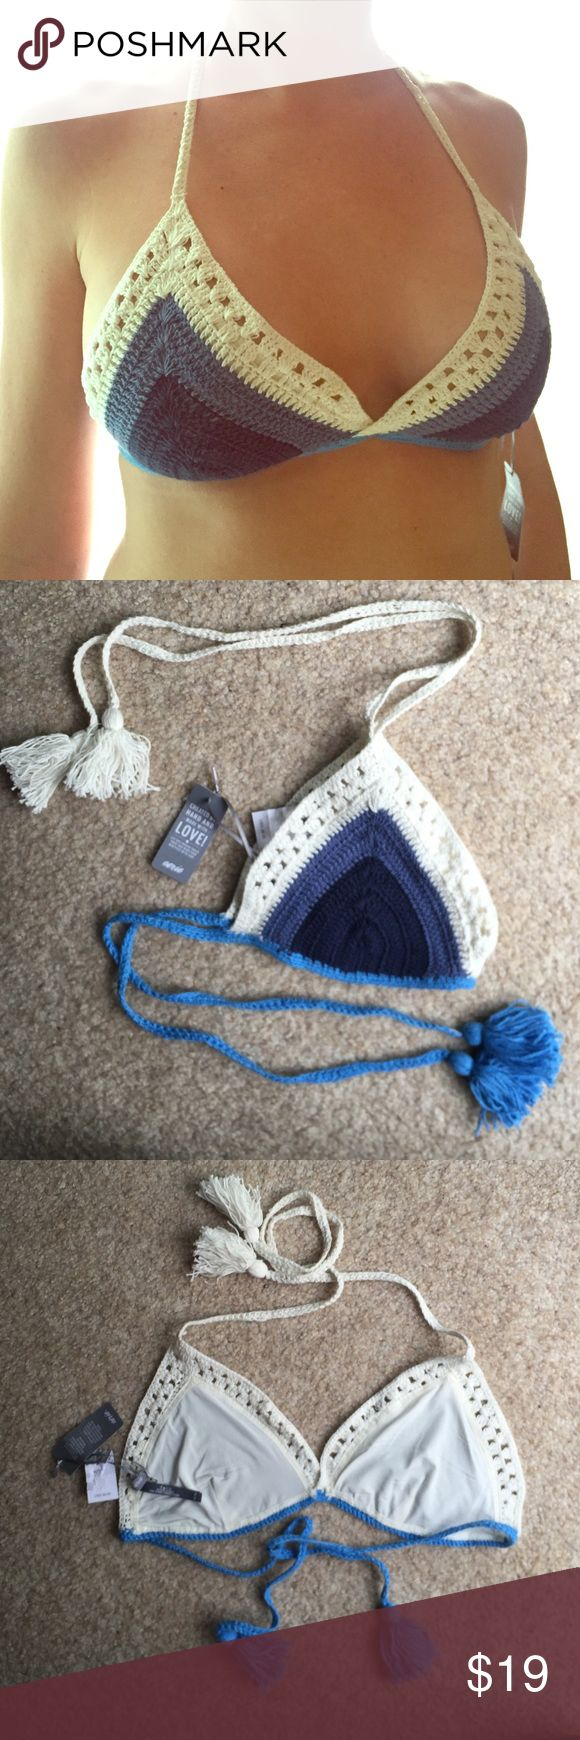 Aerie Crochet Triangle Bikini Top New with tags - never used! Size XL blue and off white crochet triangle bikini top with ties. aerie Swim Bikinis